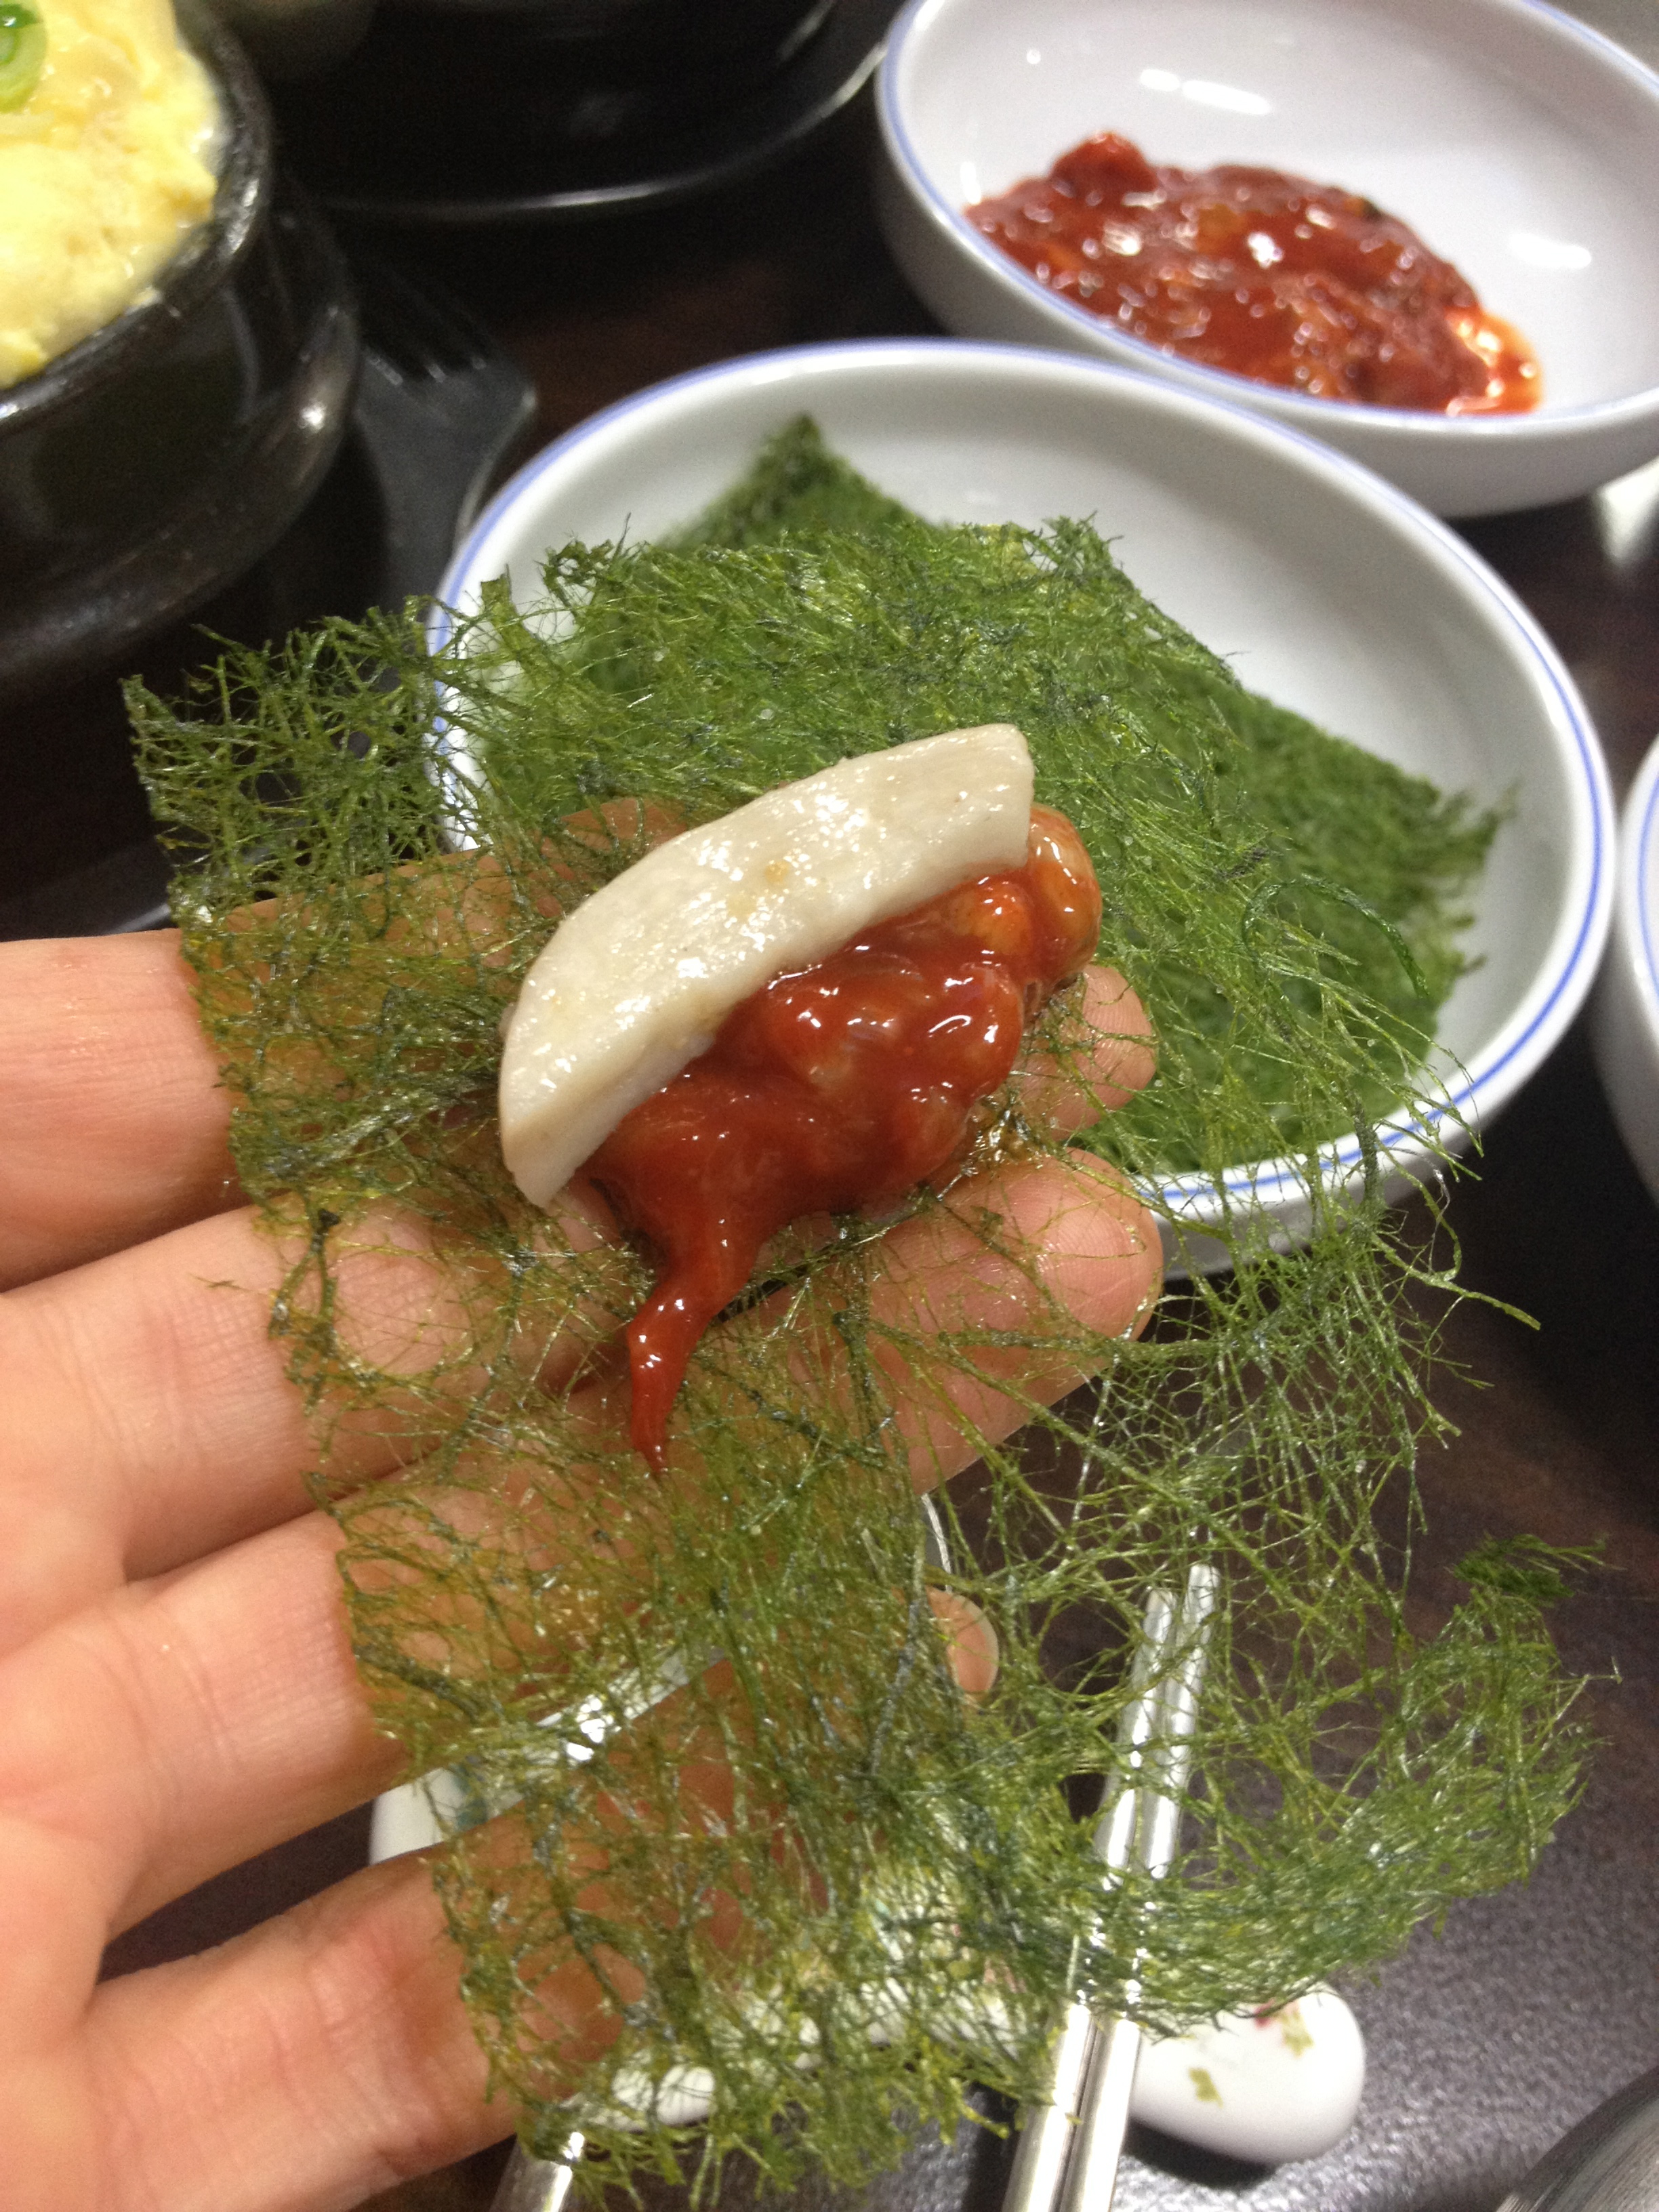 The seaweed is extremely delicate, airy and melts in your mouth. It almost has the consistency of Korean hanji paper, but melts in your mouth like cotton candy! You can put the other delicious side dishes like mushrooms and raw oysters in a spicy sauce on and enjoy the different textures and flavours together.